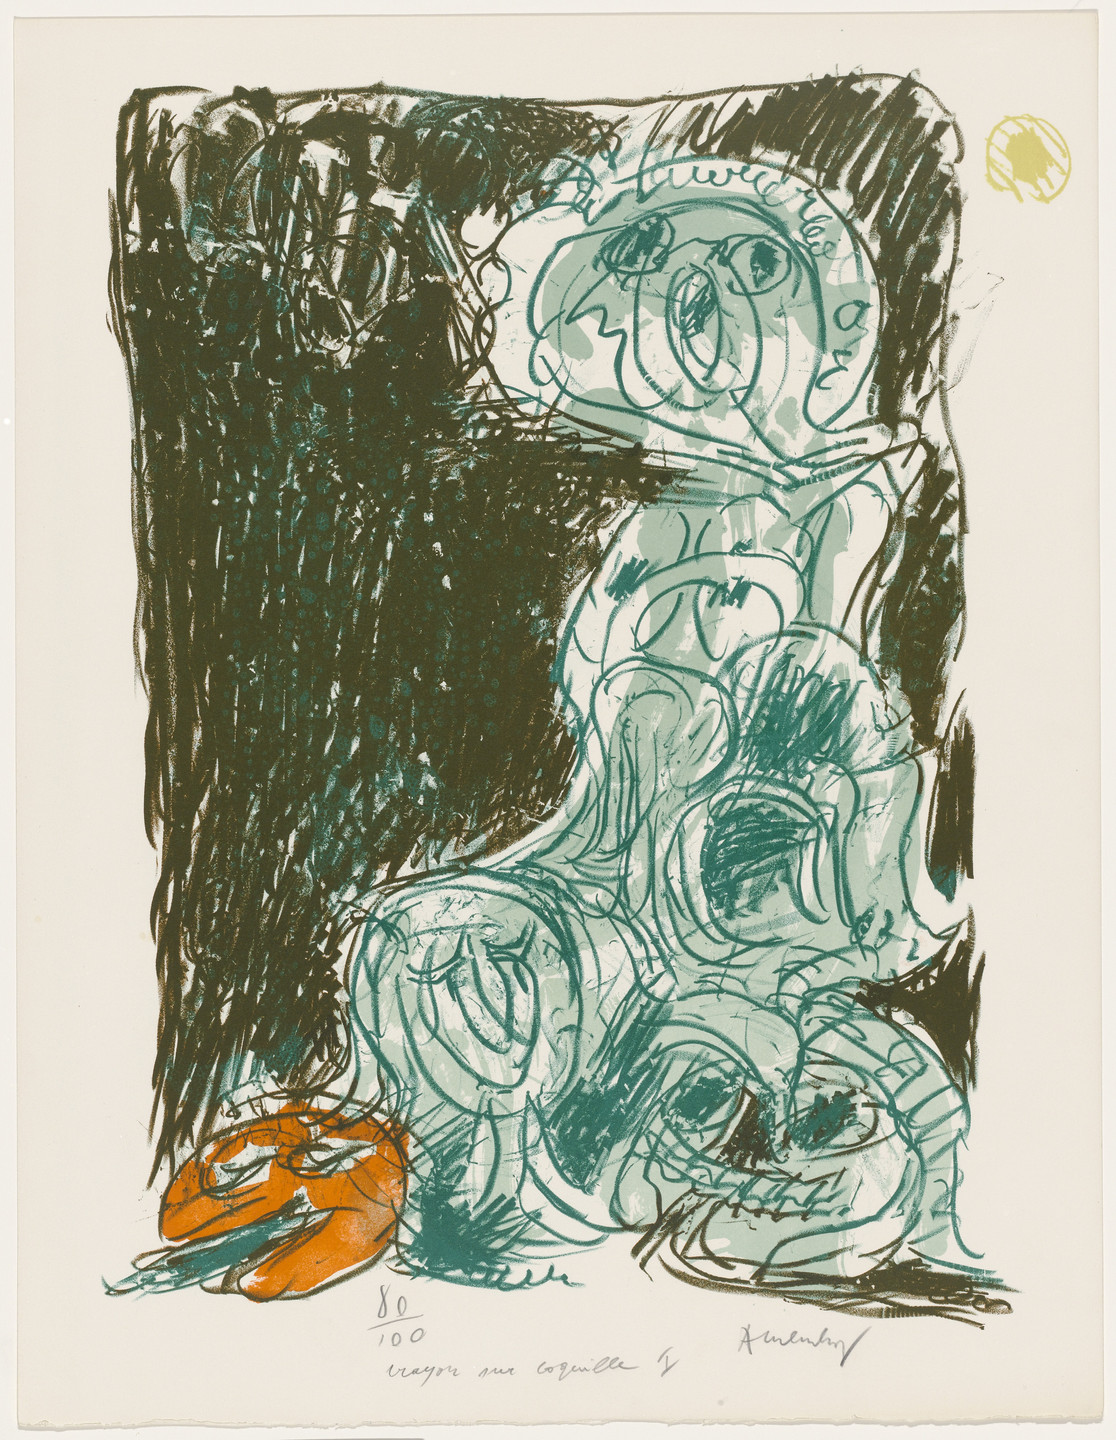 Pierre Alechinsky. Chance and Its Mother (Le hasard et sa mère) from the portfolio Pencil on Shell (Crayon sur coquille). 1971